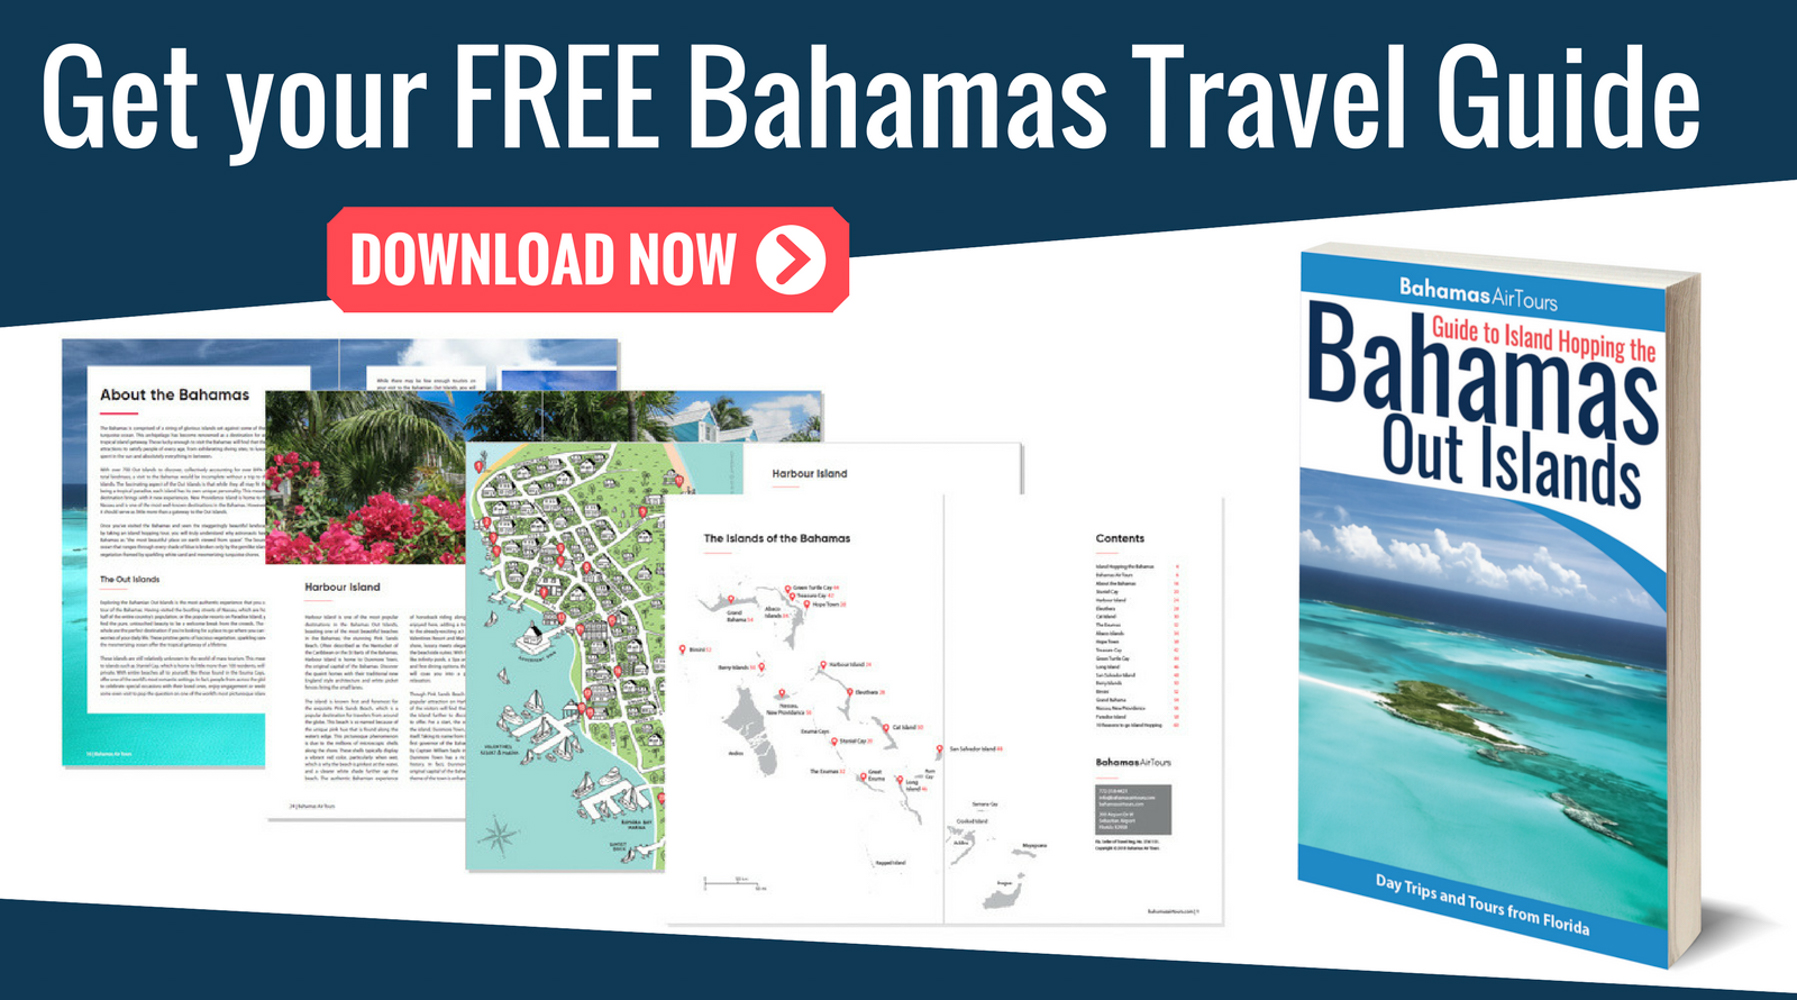 Get a free copy of the Bahamas Guide to island hopping the Out Islands. From Bahamas Air Tours, providing Bahamas Day Trips and Island Hopping Tours